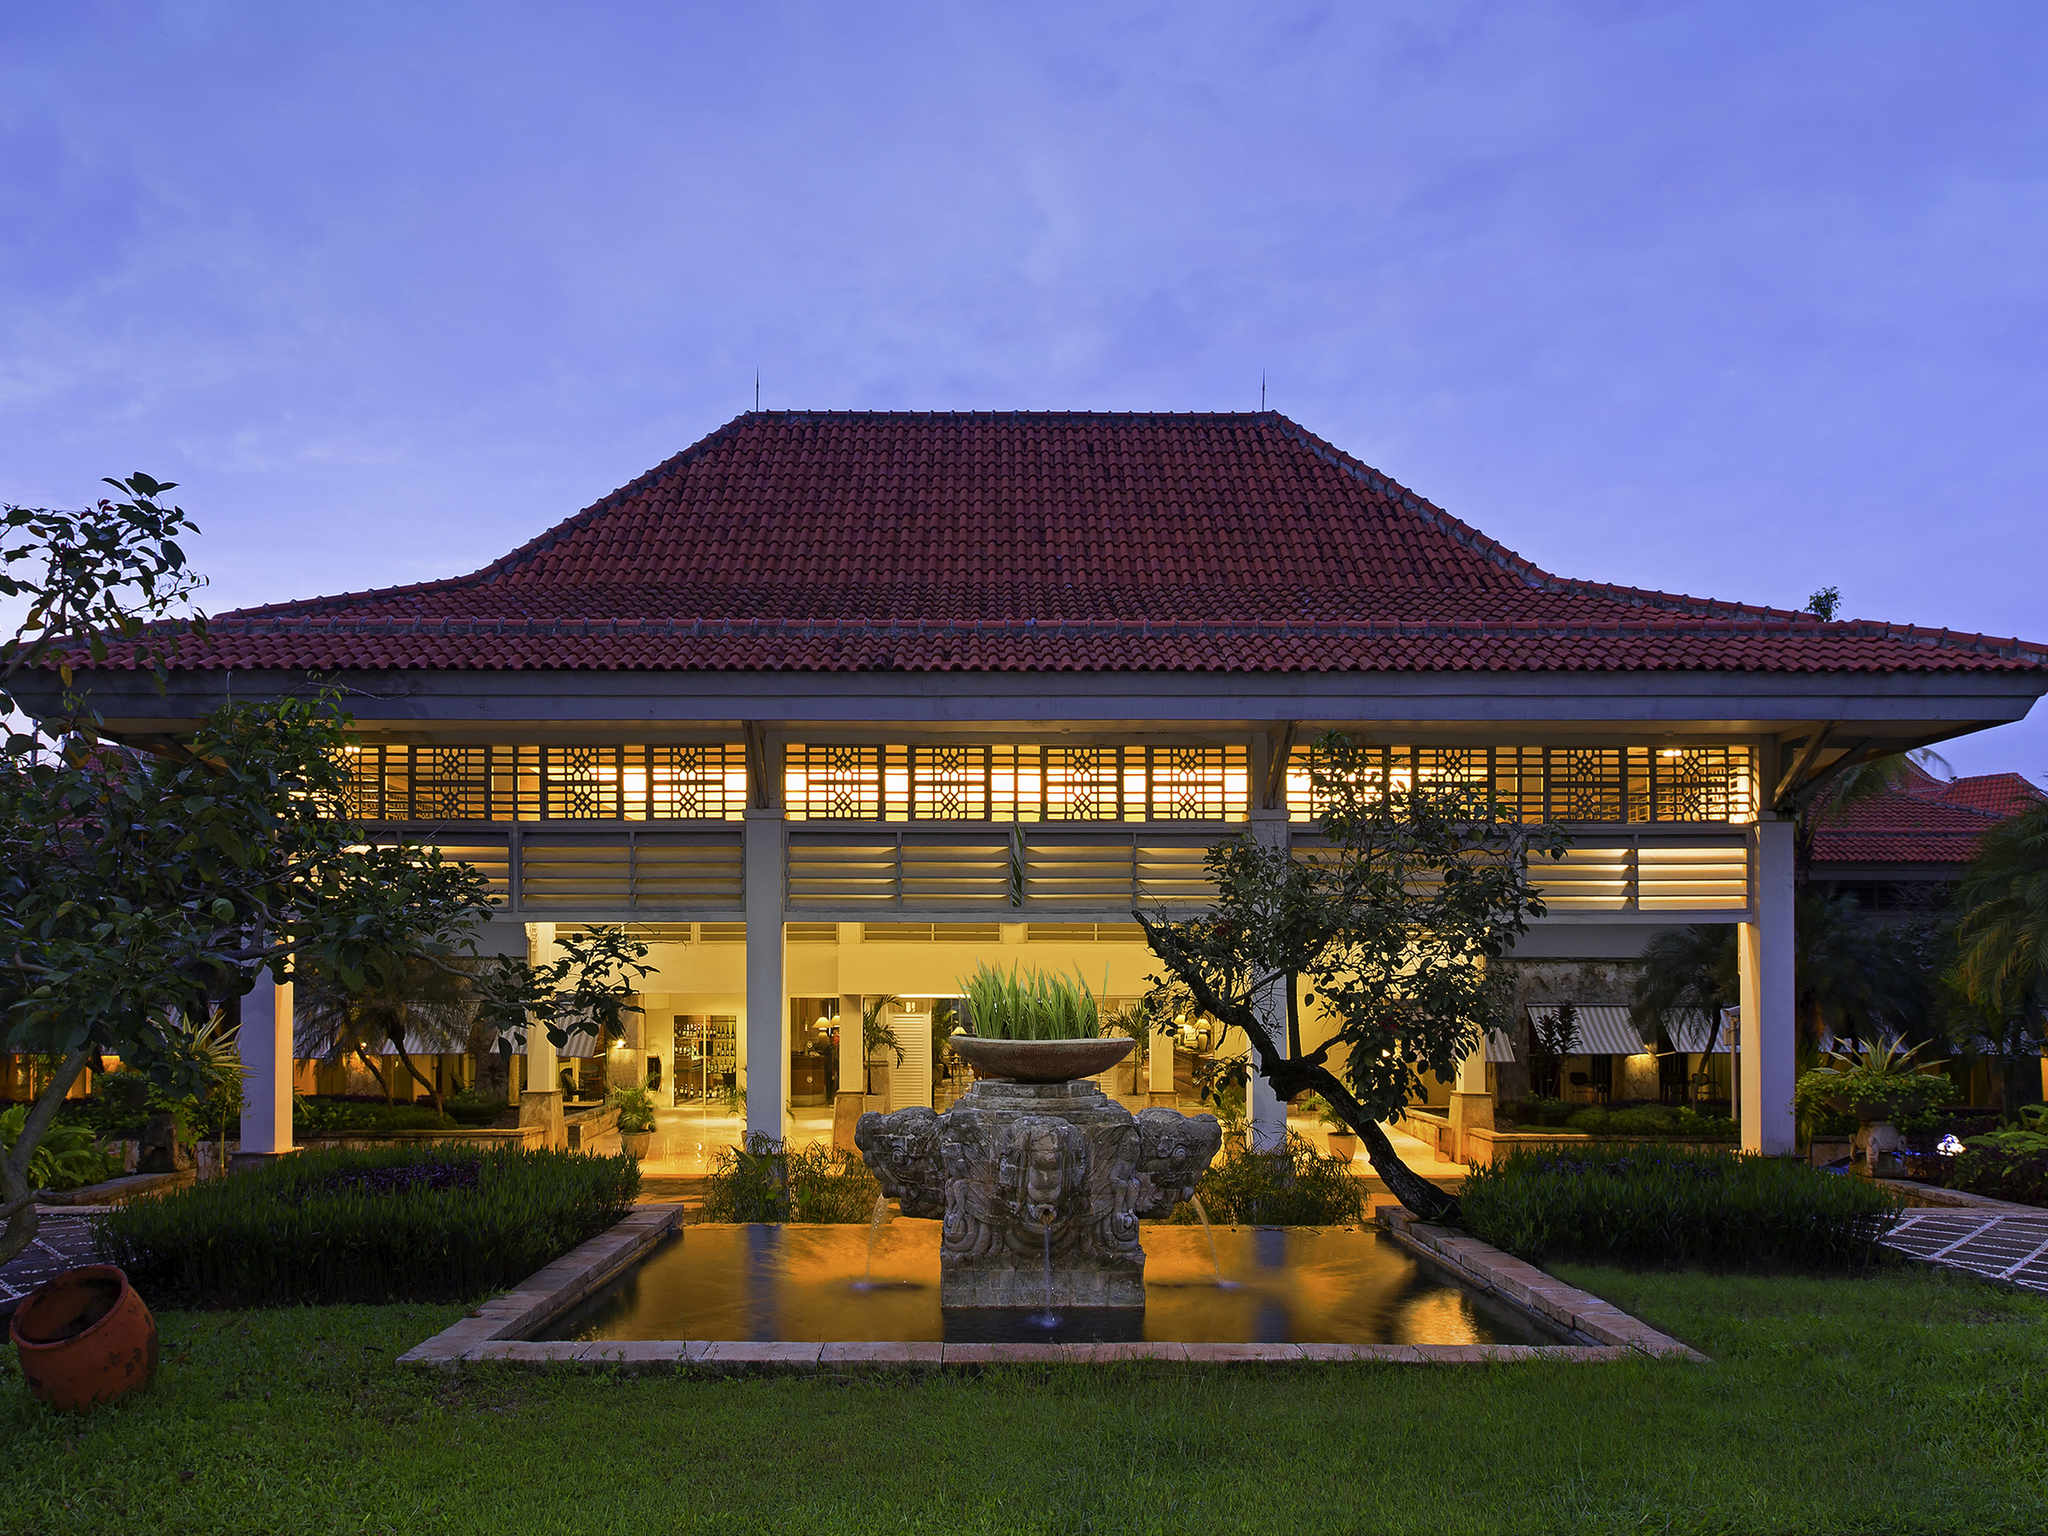 Hotel - Bandara International Hotel - Managed by AccorHotels